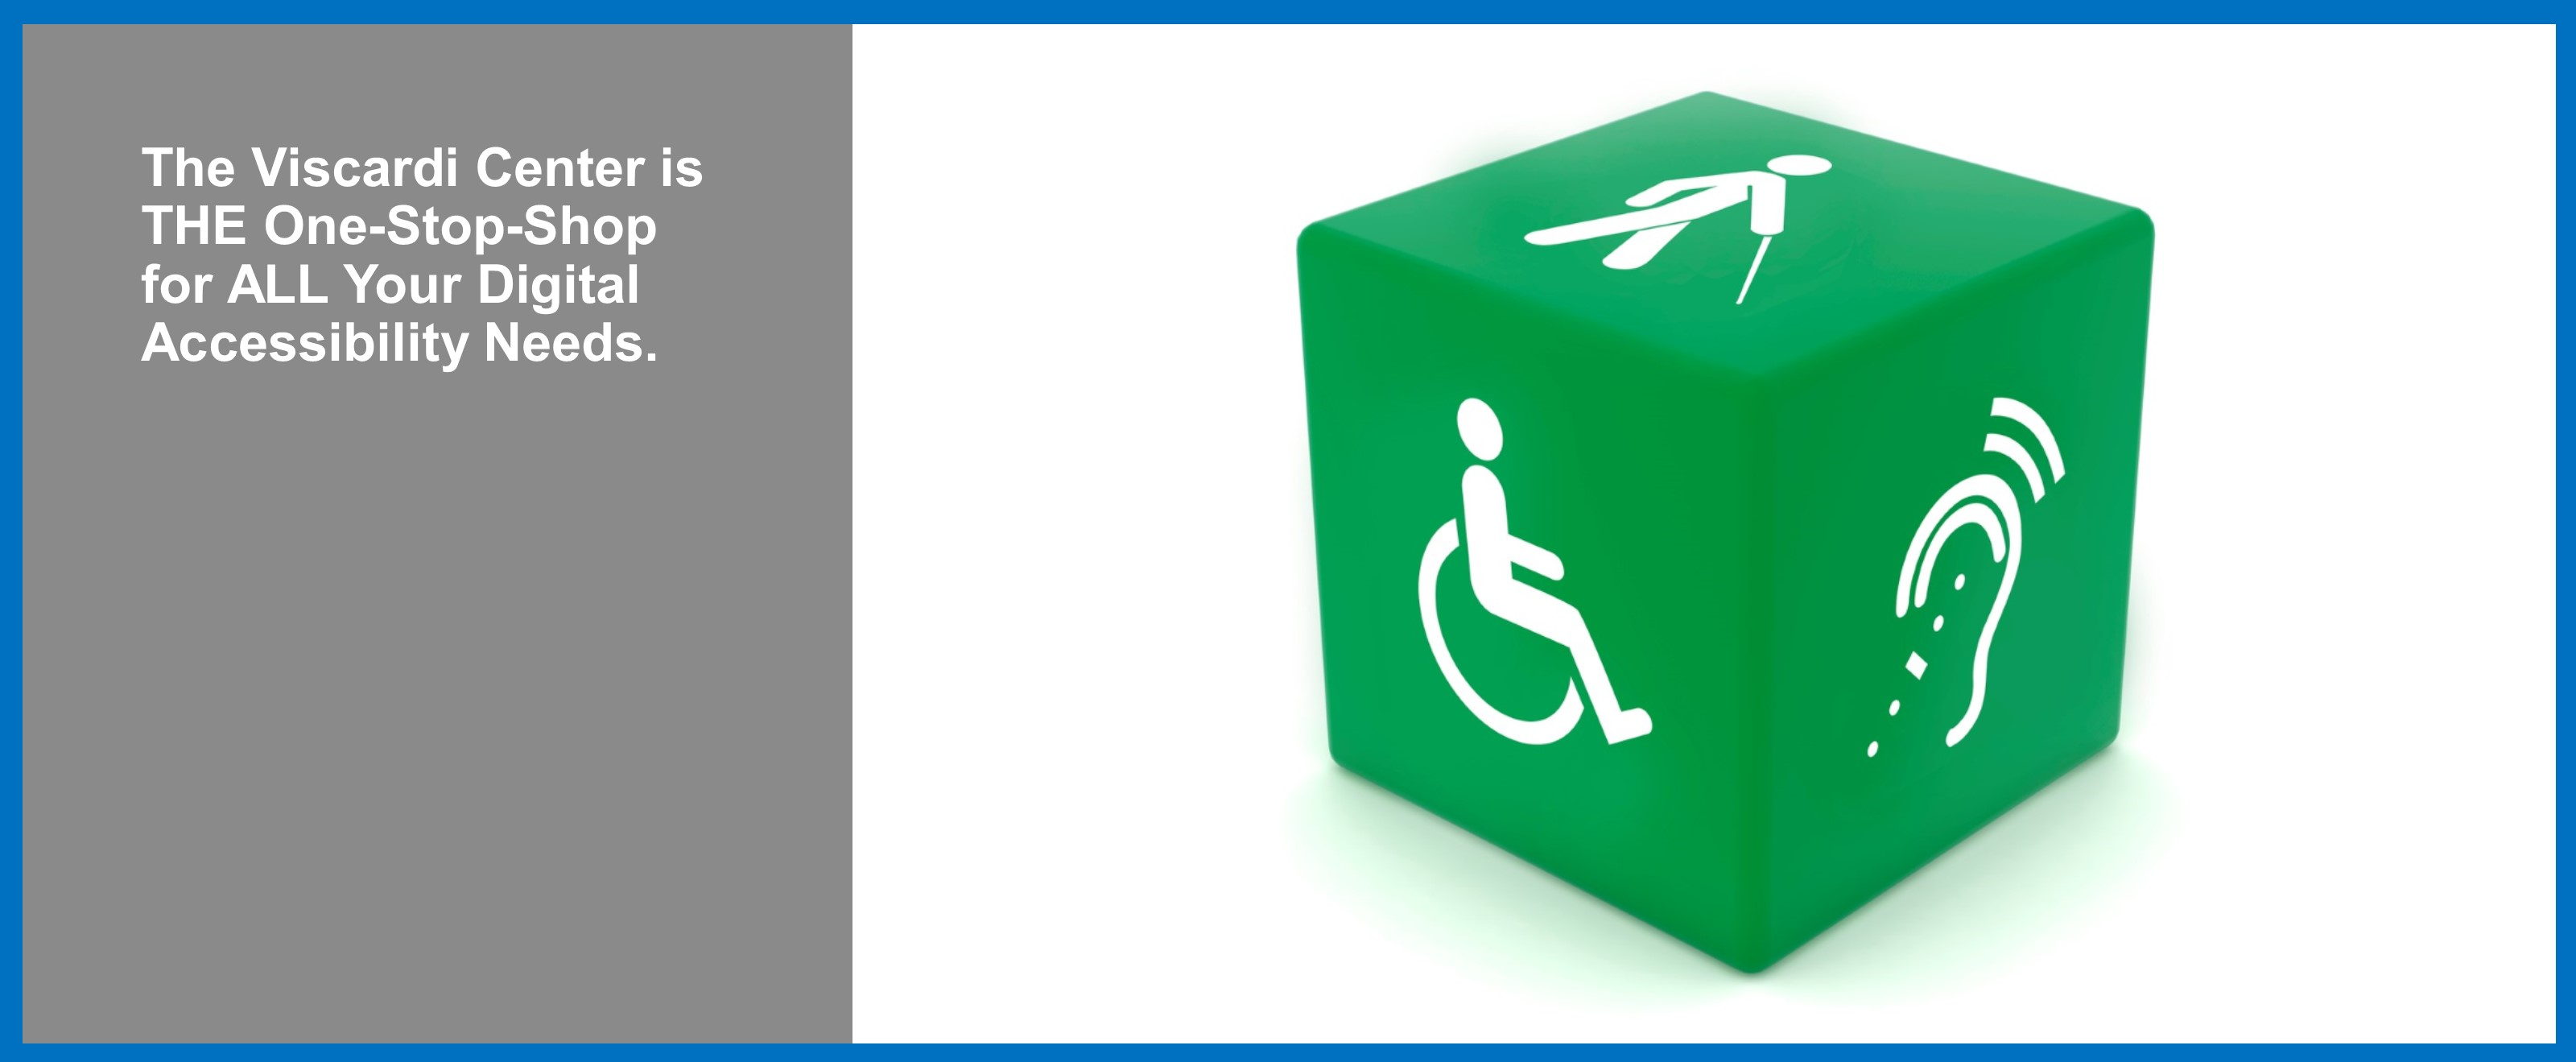 The Viscardi Center is THE One-Stop-Shop for ALL Your Digital Accessibility Needs.